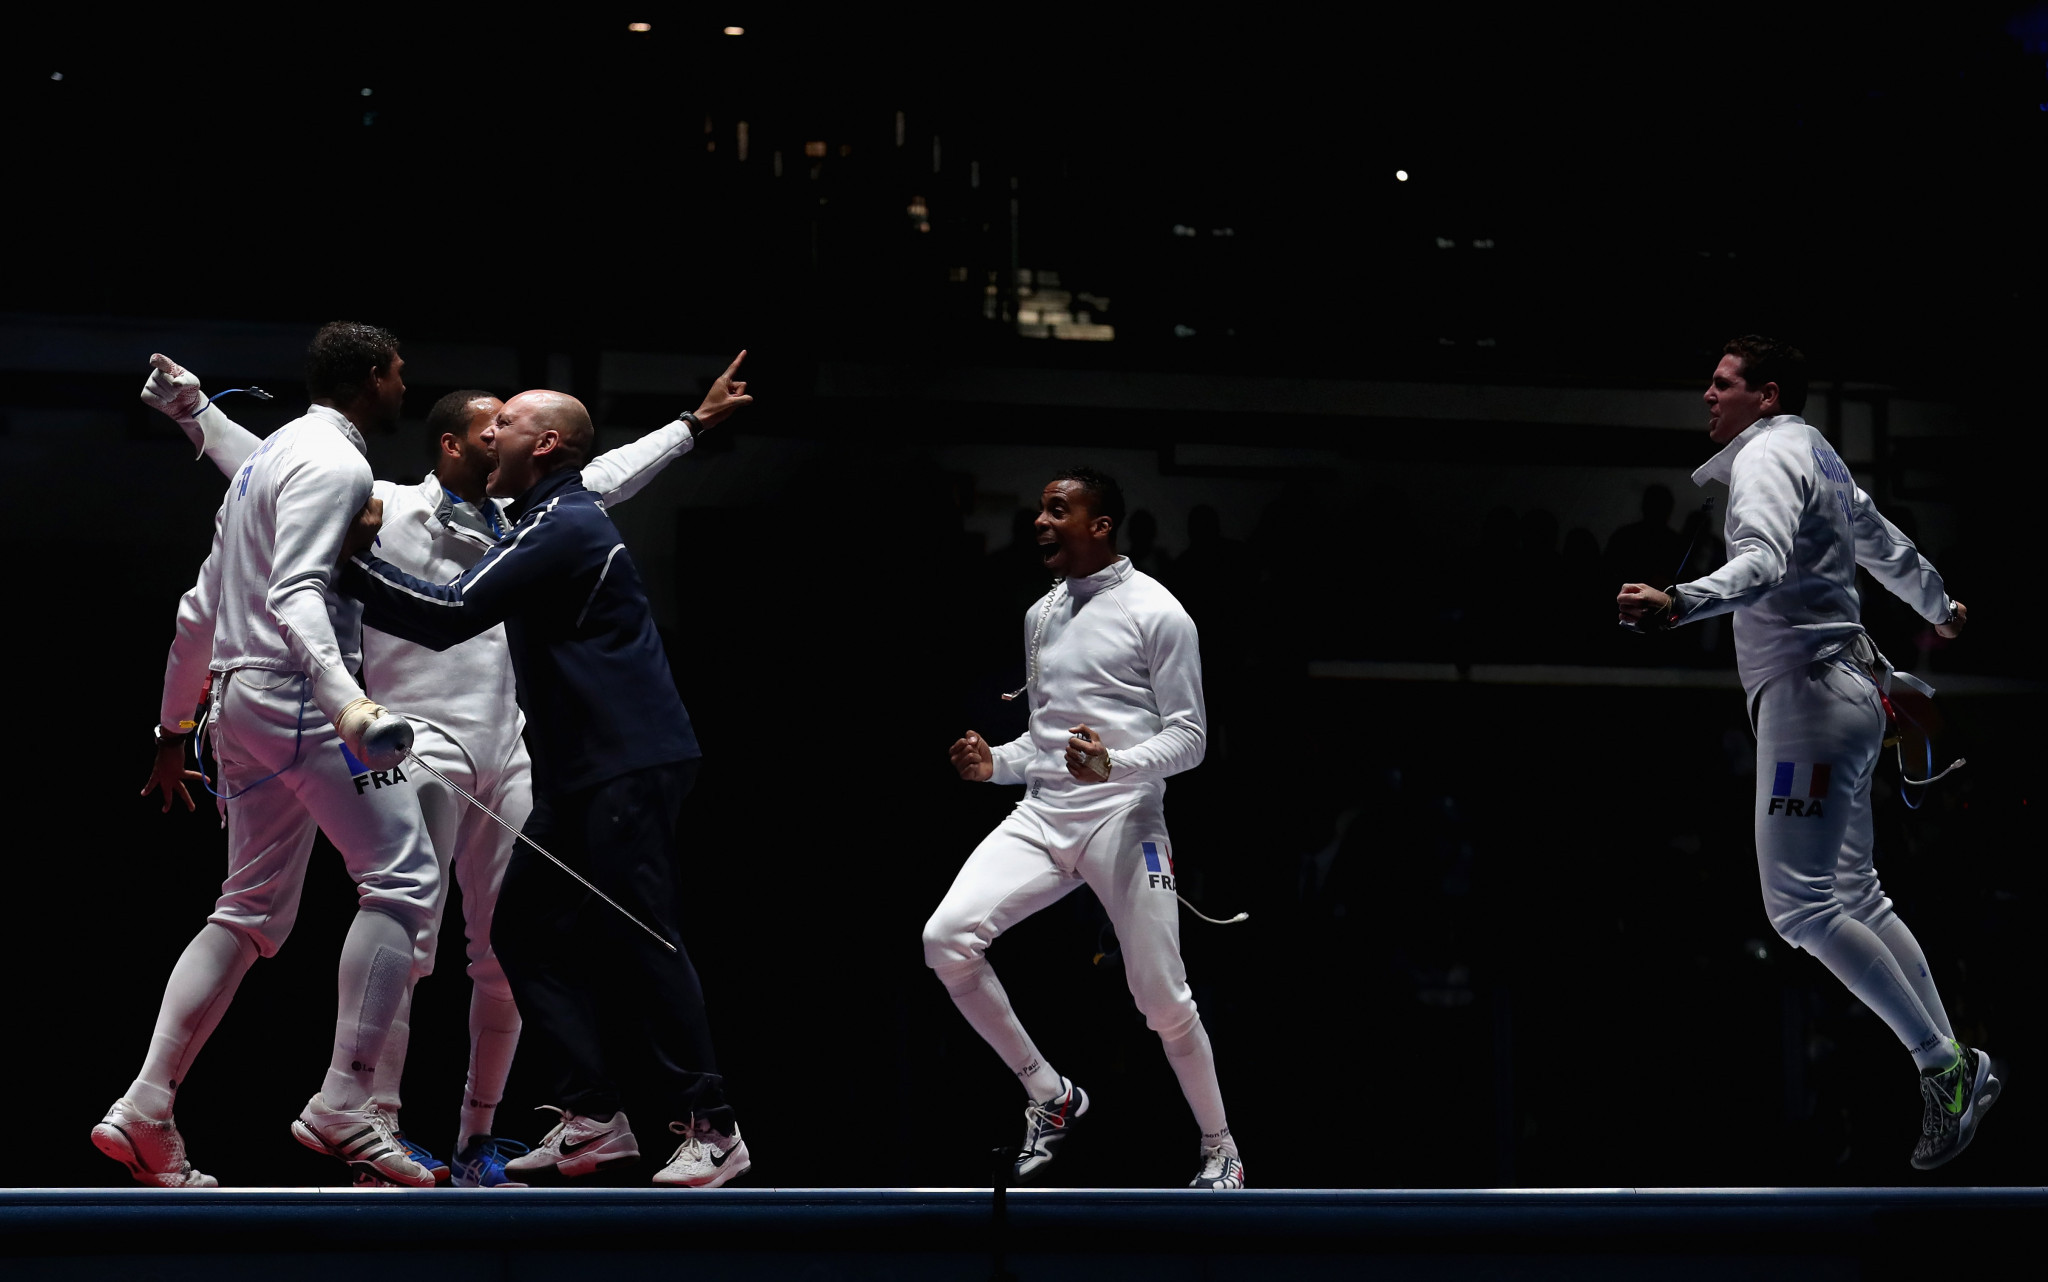 There will be a full quota of fencing team events at Tokyo 2020 ©Getty Images